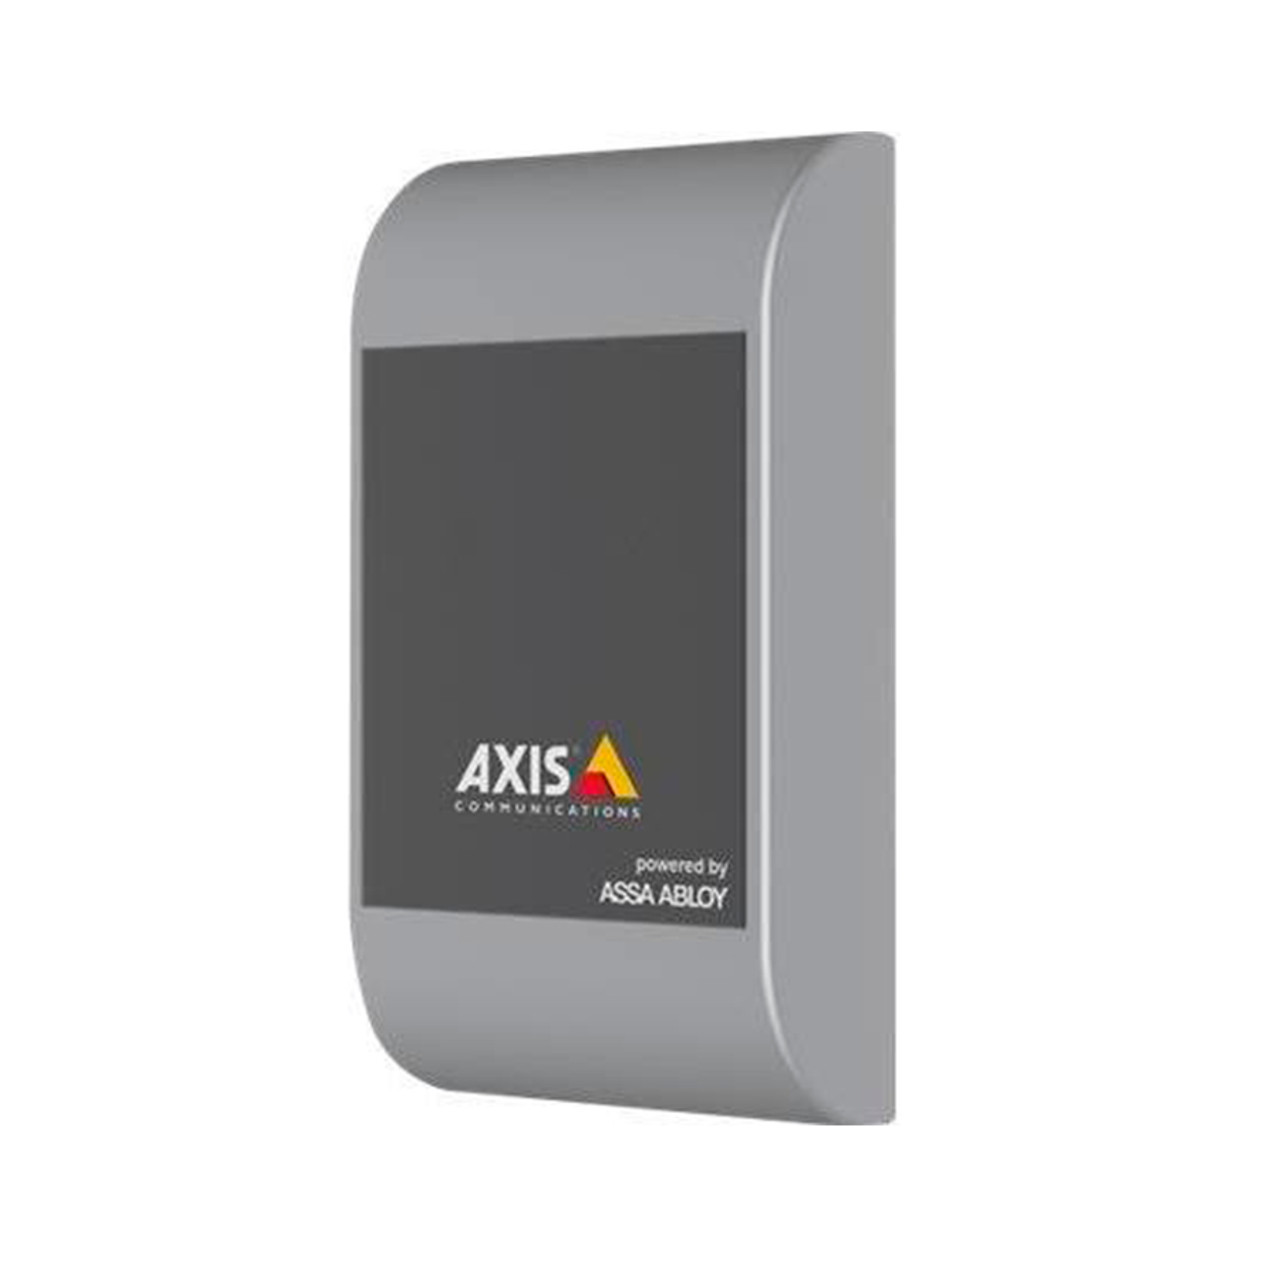 Axis A4010 E Reader Without Keypad 01023 001